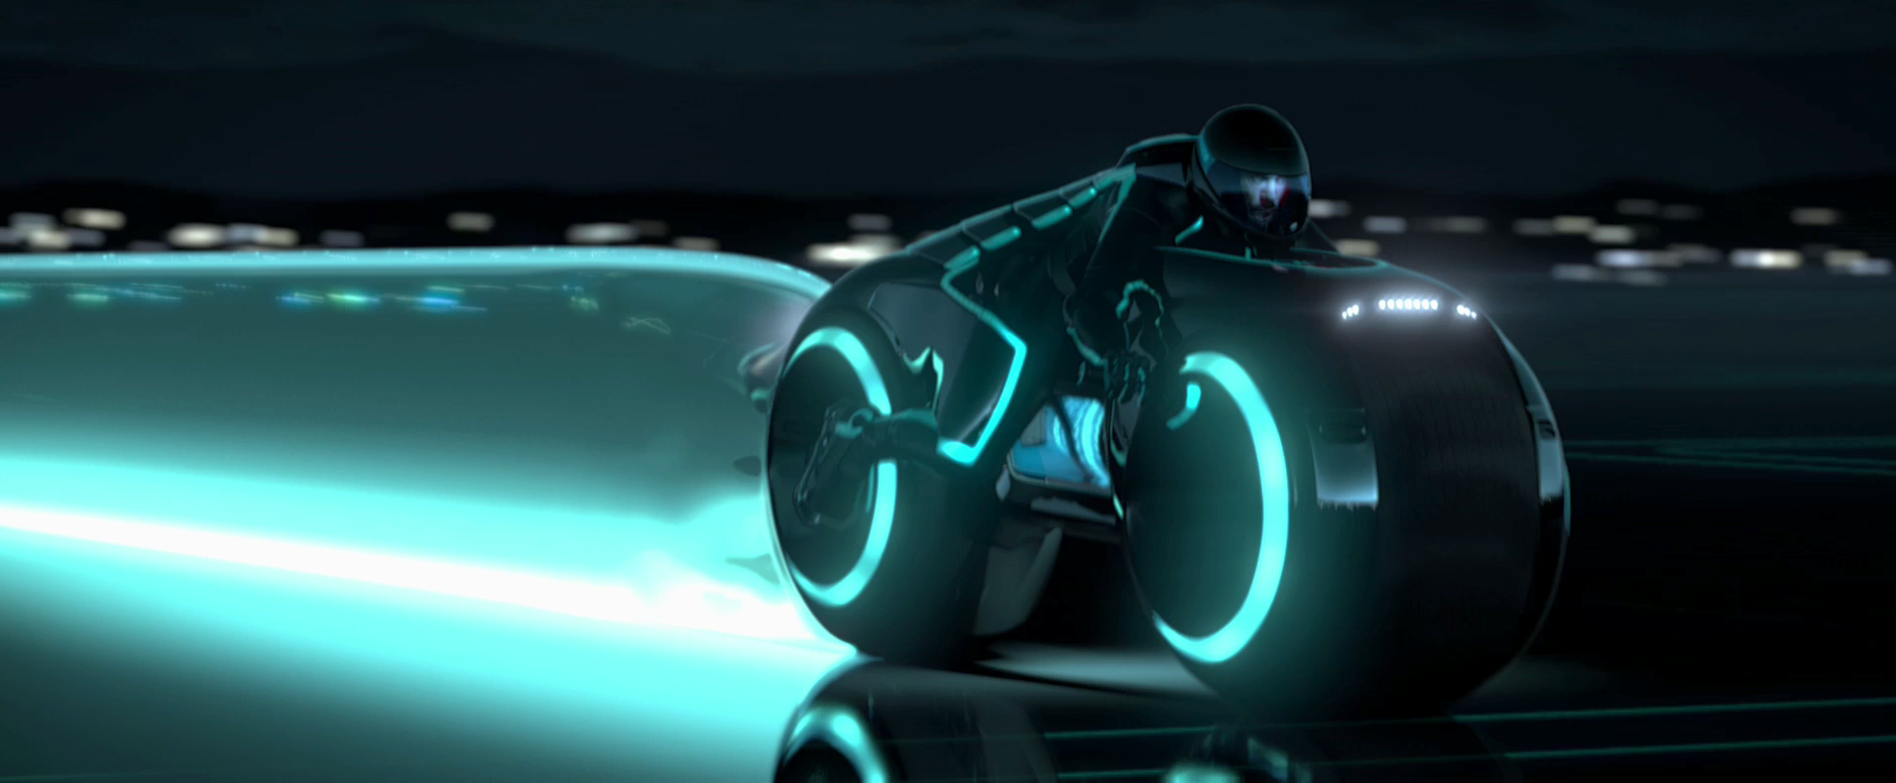 tron legacy light cycle desktop wallpaper